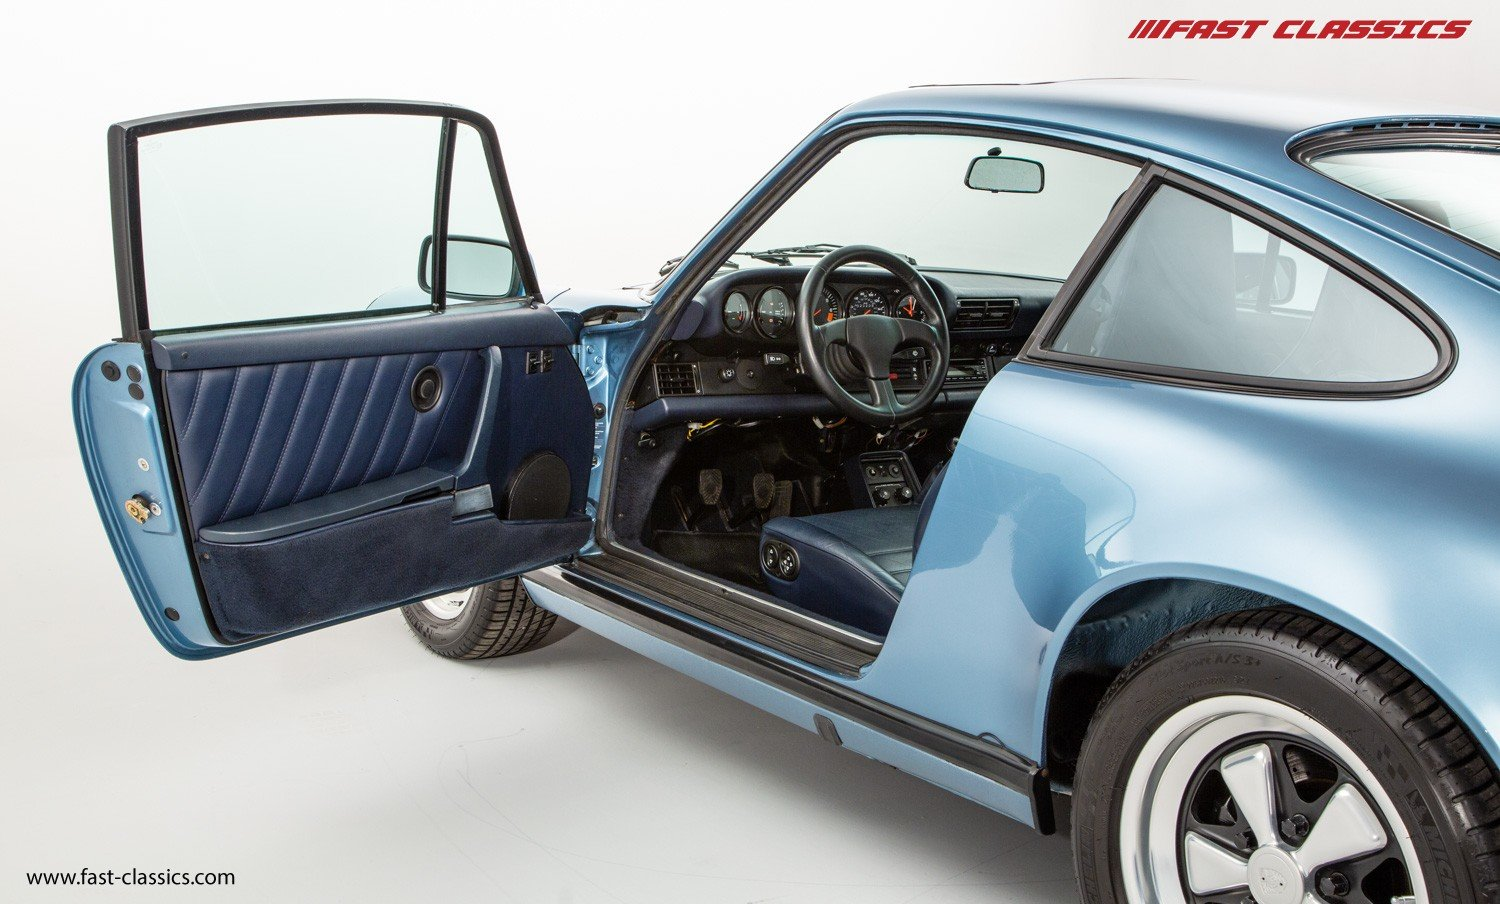 1986 PORSCHE 911 CARRERA 3.2 // IRIS BLUE WITH BLUE LEATHER  For Sale (picture 4 of 6)